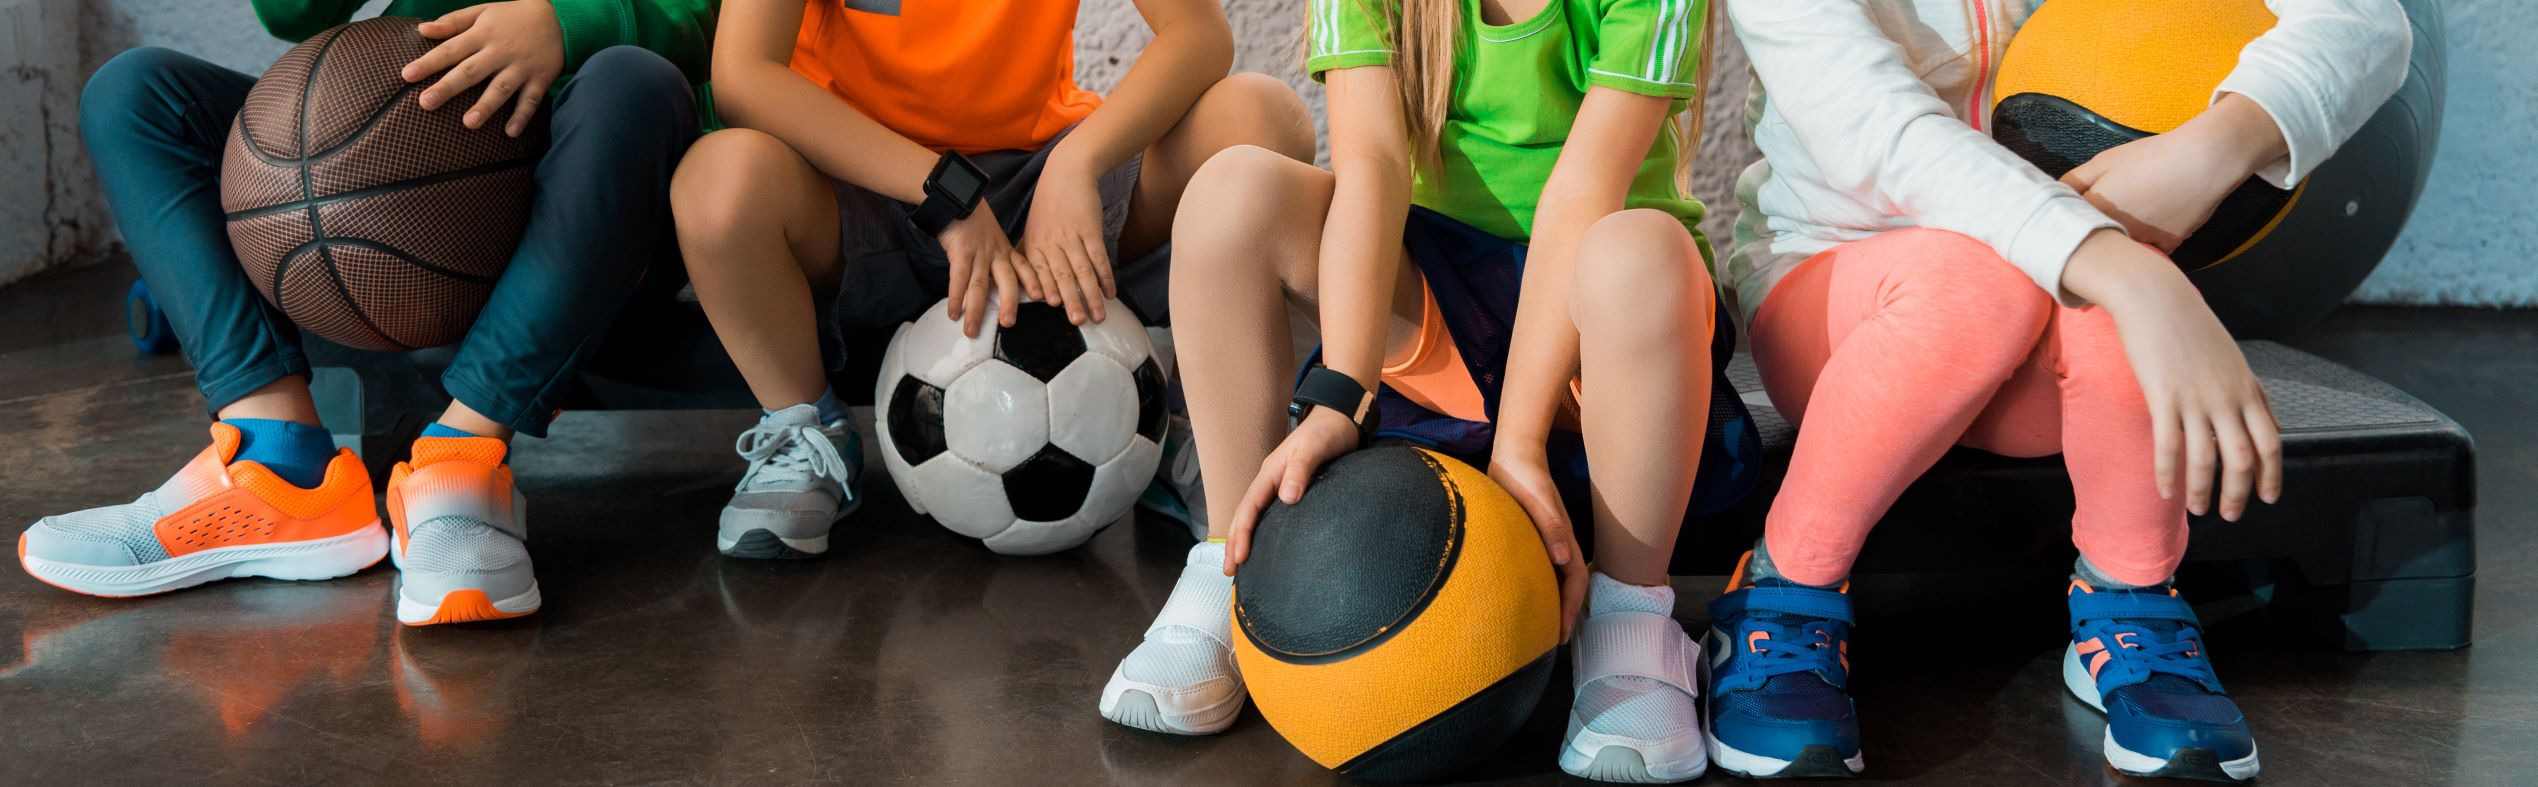 Cropped view of children sitting on step platforms with balls in gym, panoramic shot